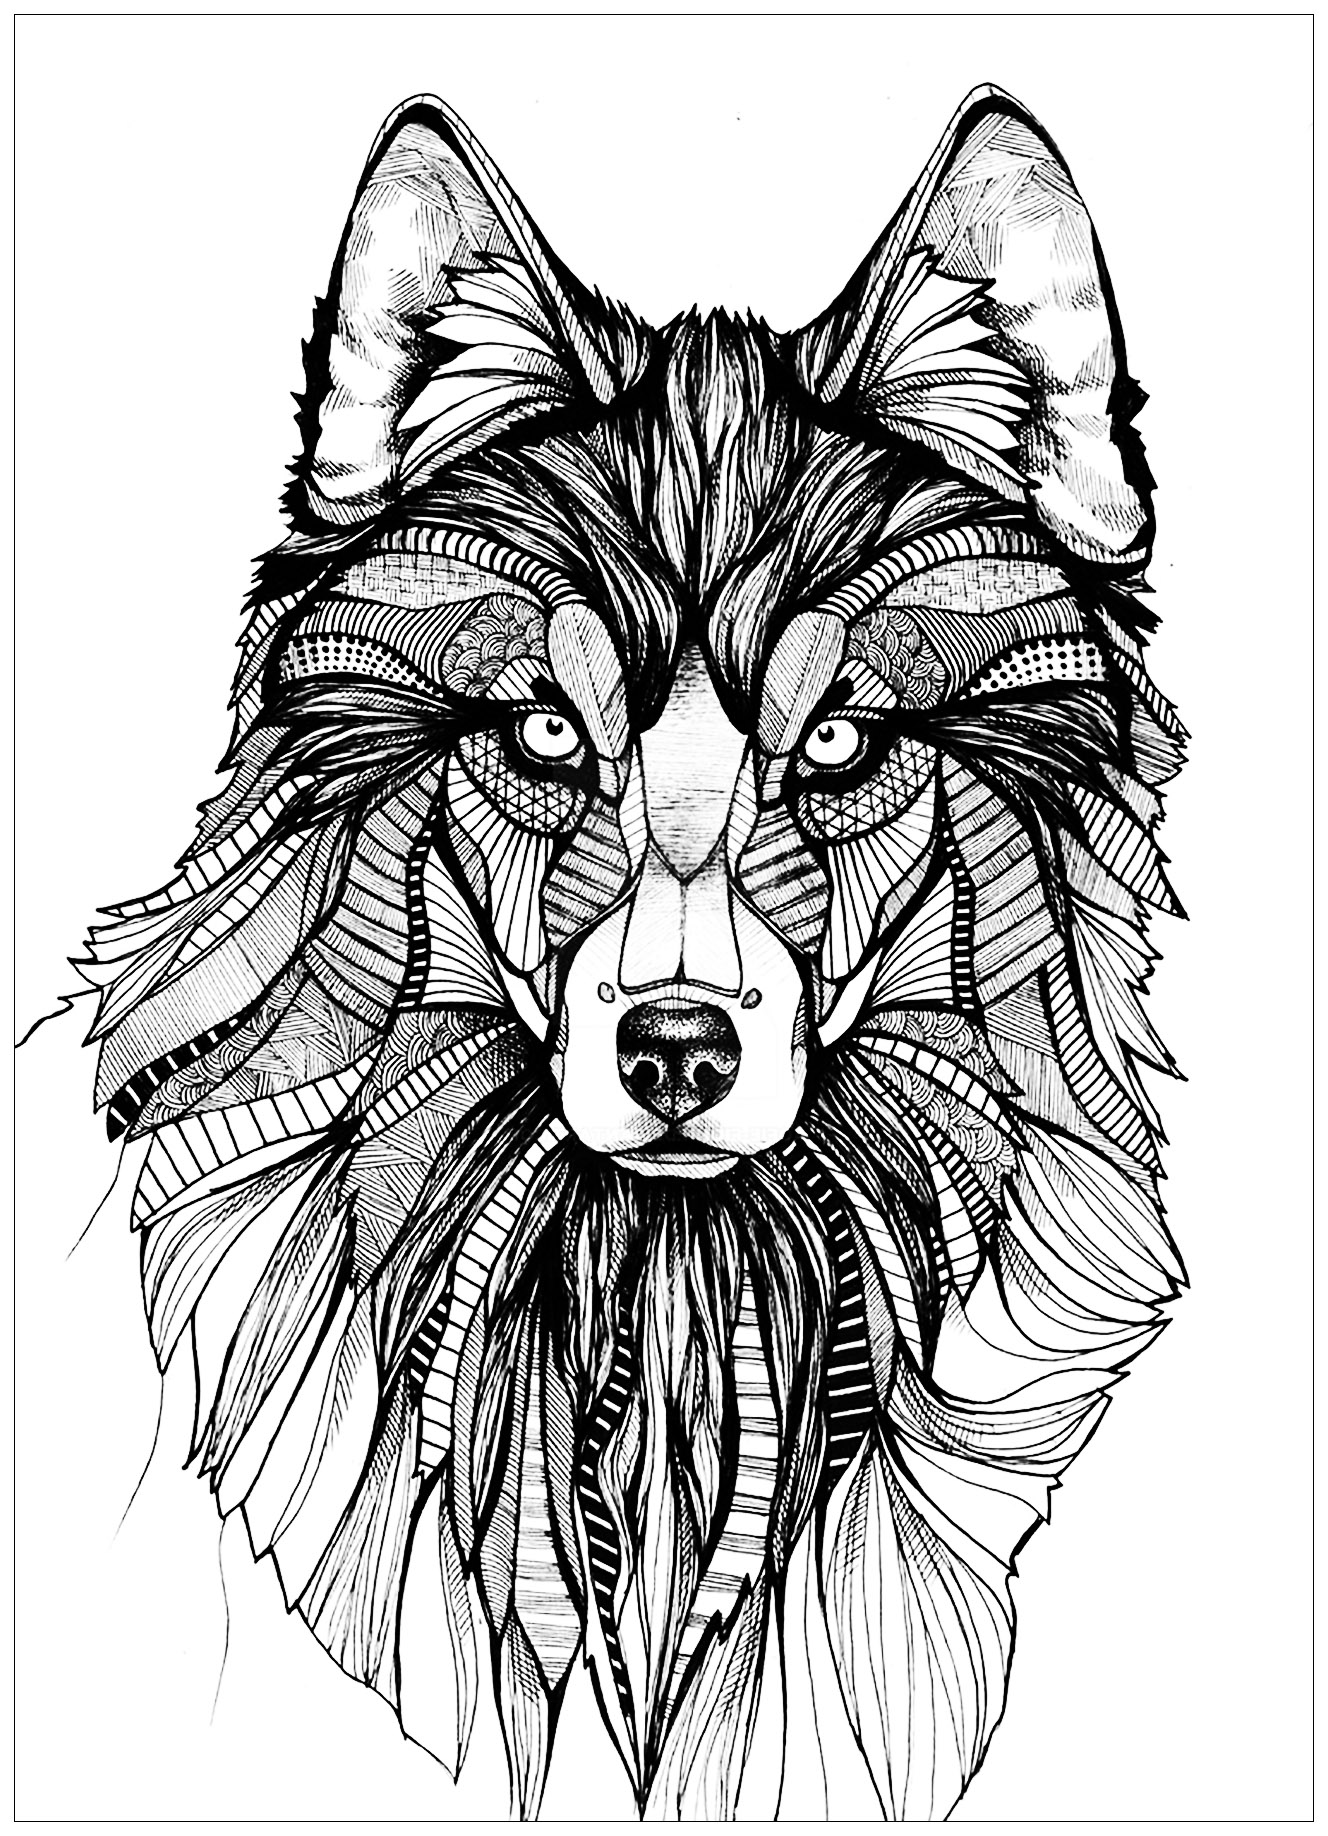 wolf coloring pages for adults wolf 2 wolves adult coloring pages wolf for coloring adults pages